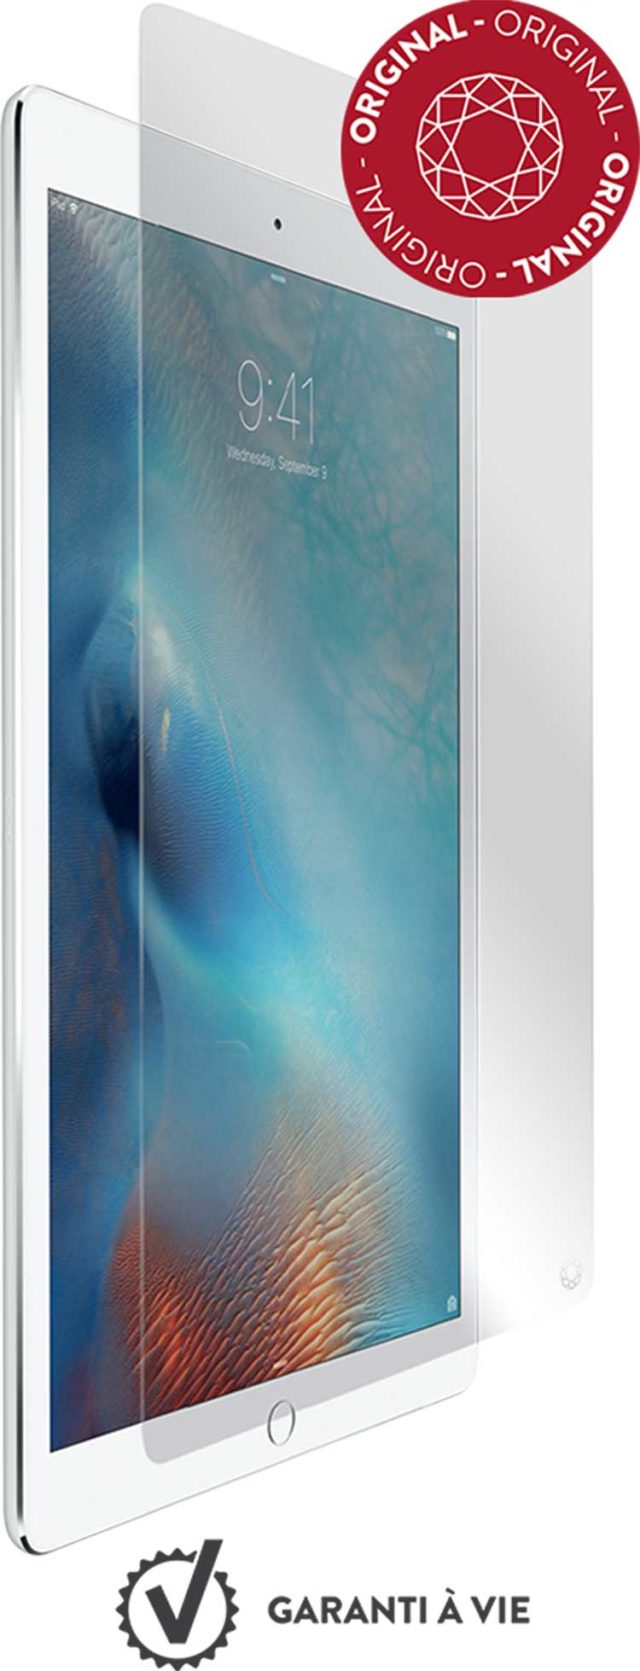 The tempered glass screen protector FORCE GLASS for iPad Pro 9.7 - Packshot